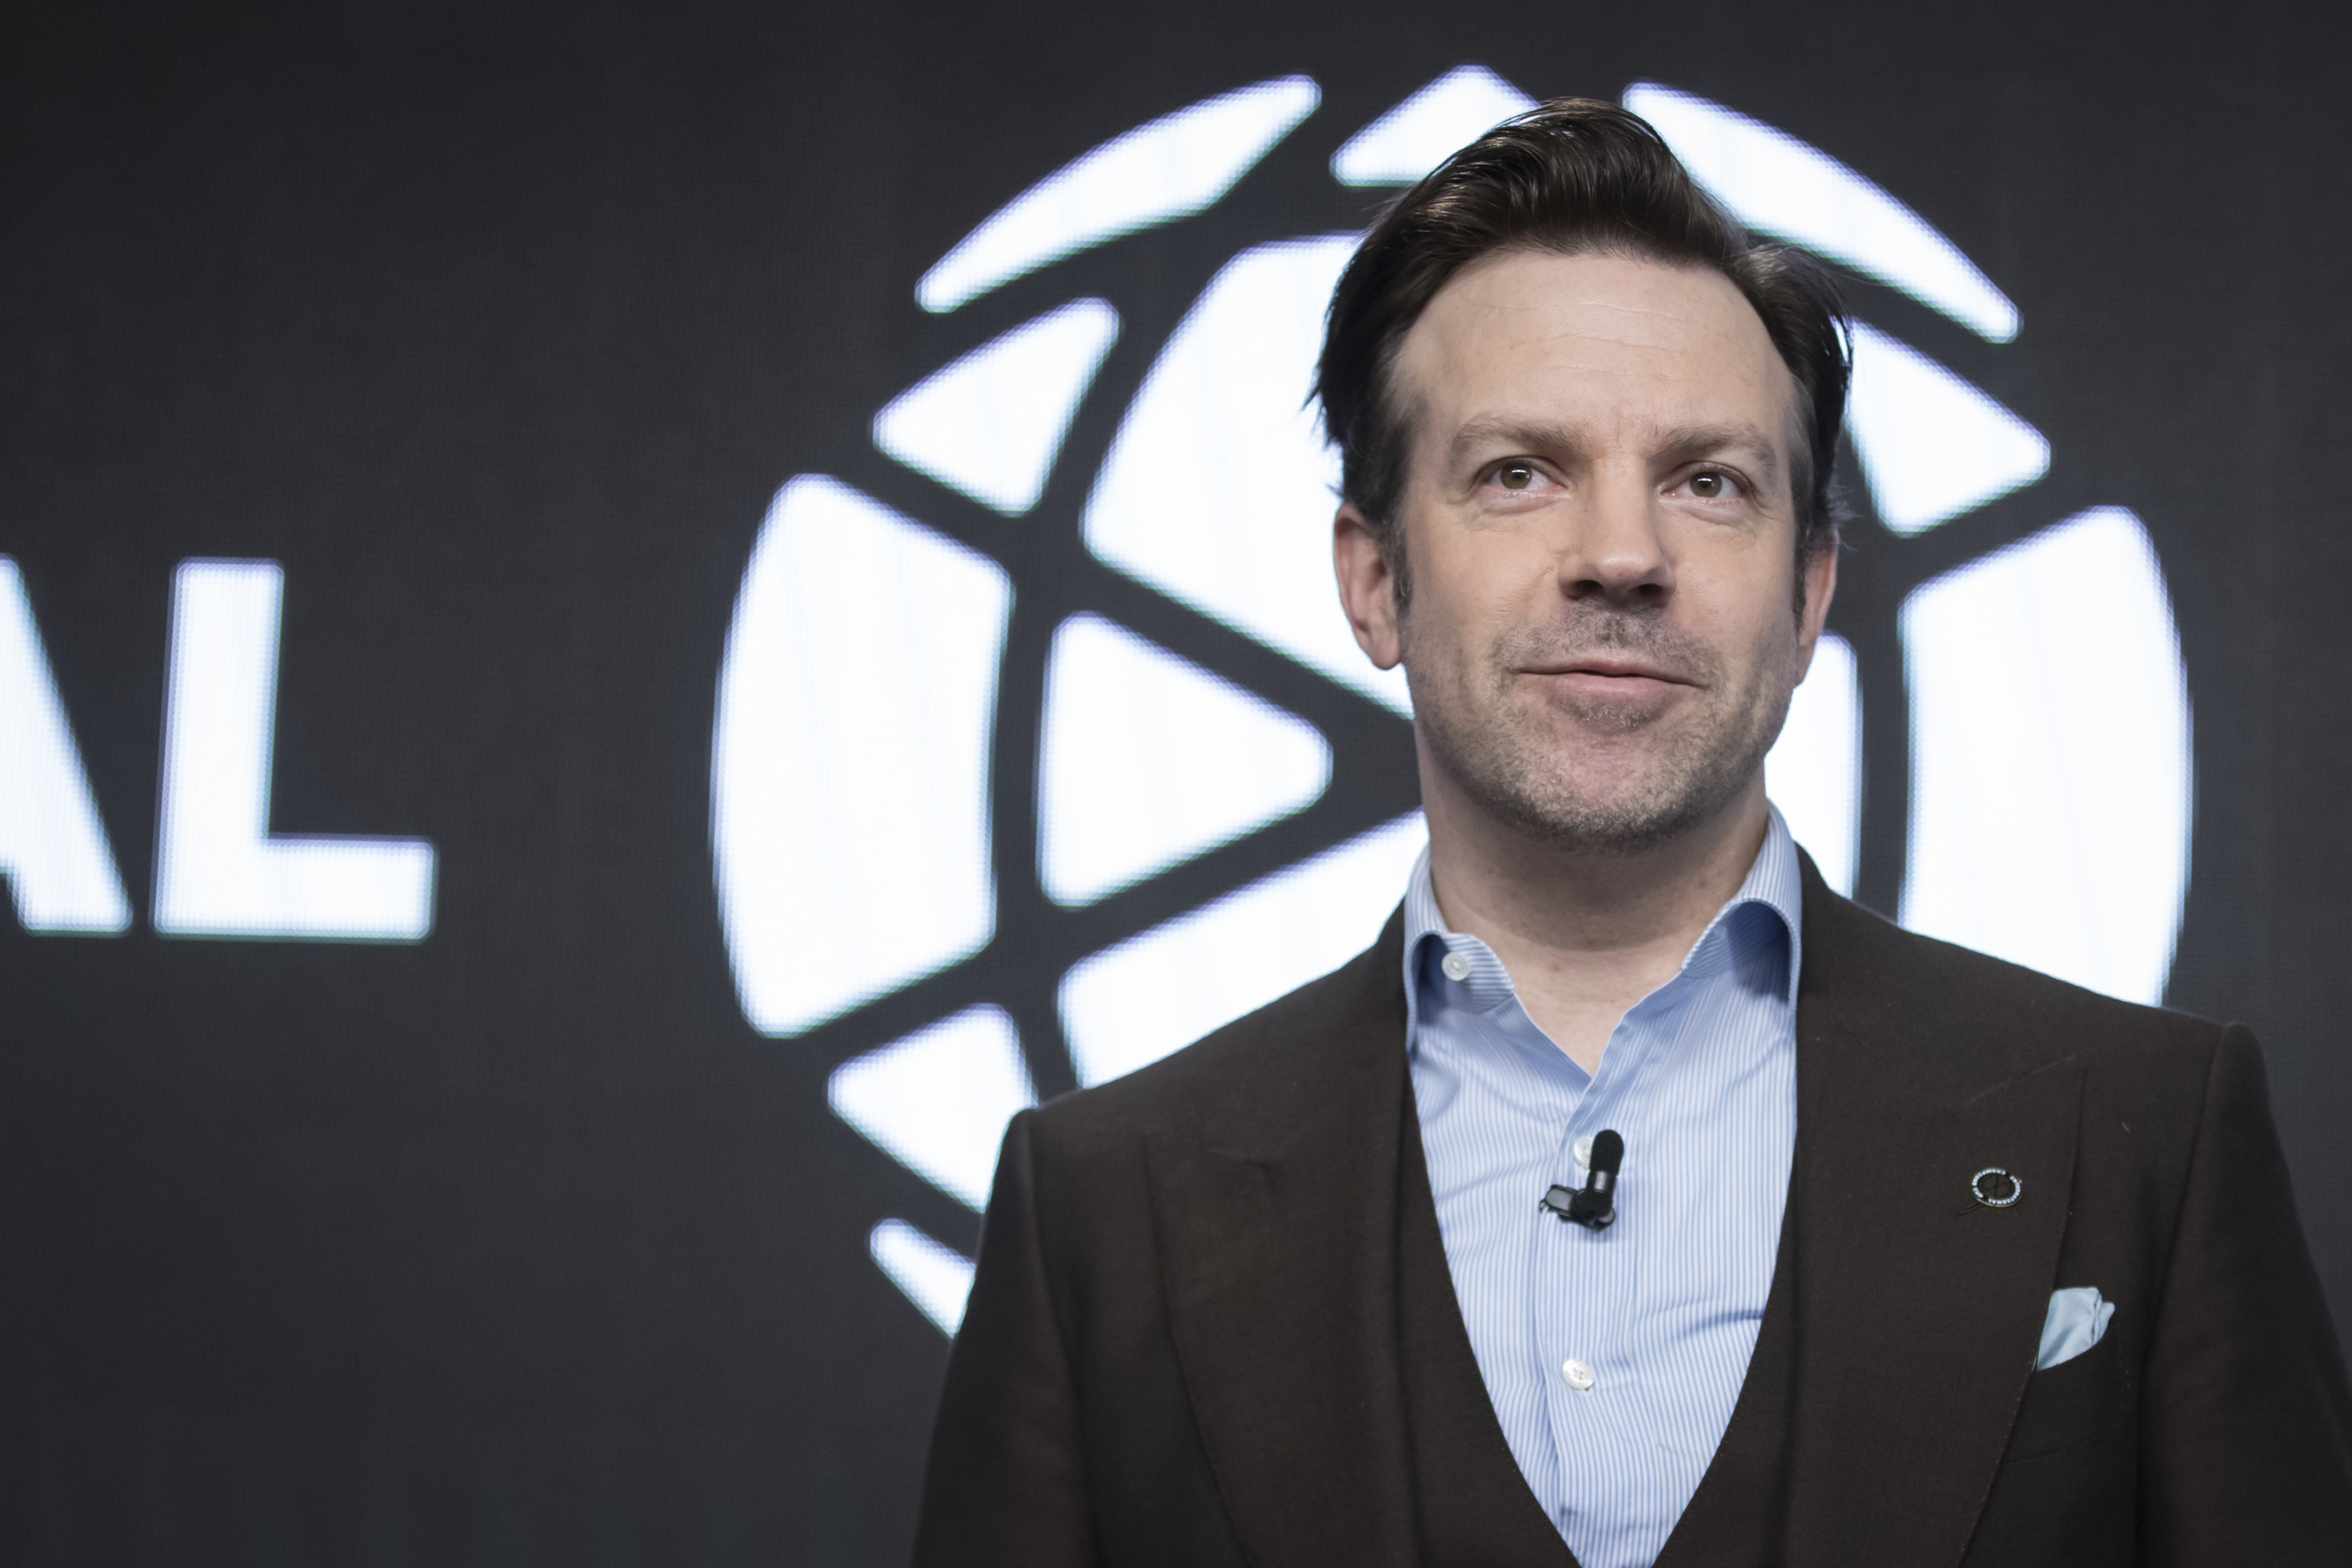 Jason Sudeikis is photographed at an event in 2019